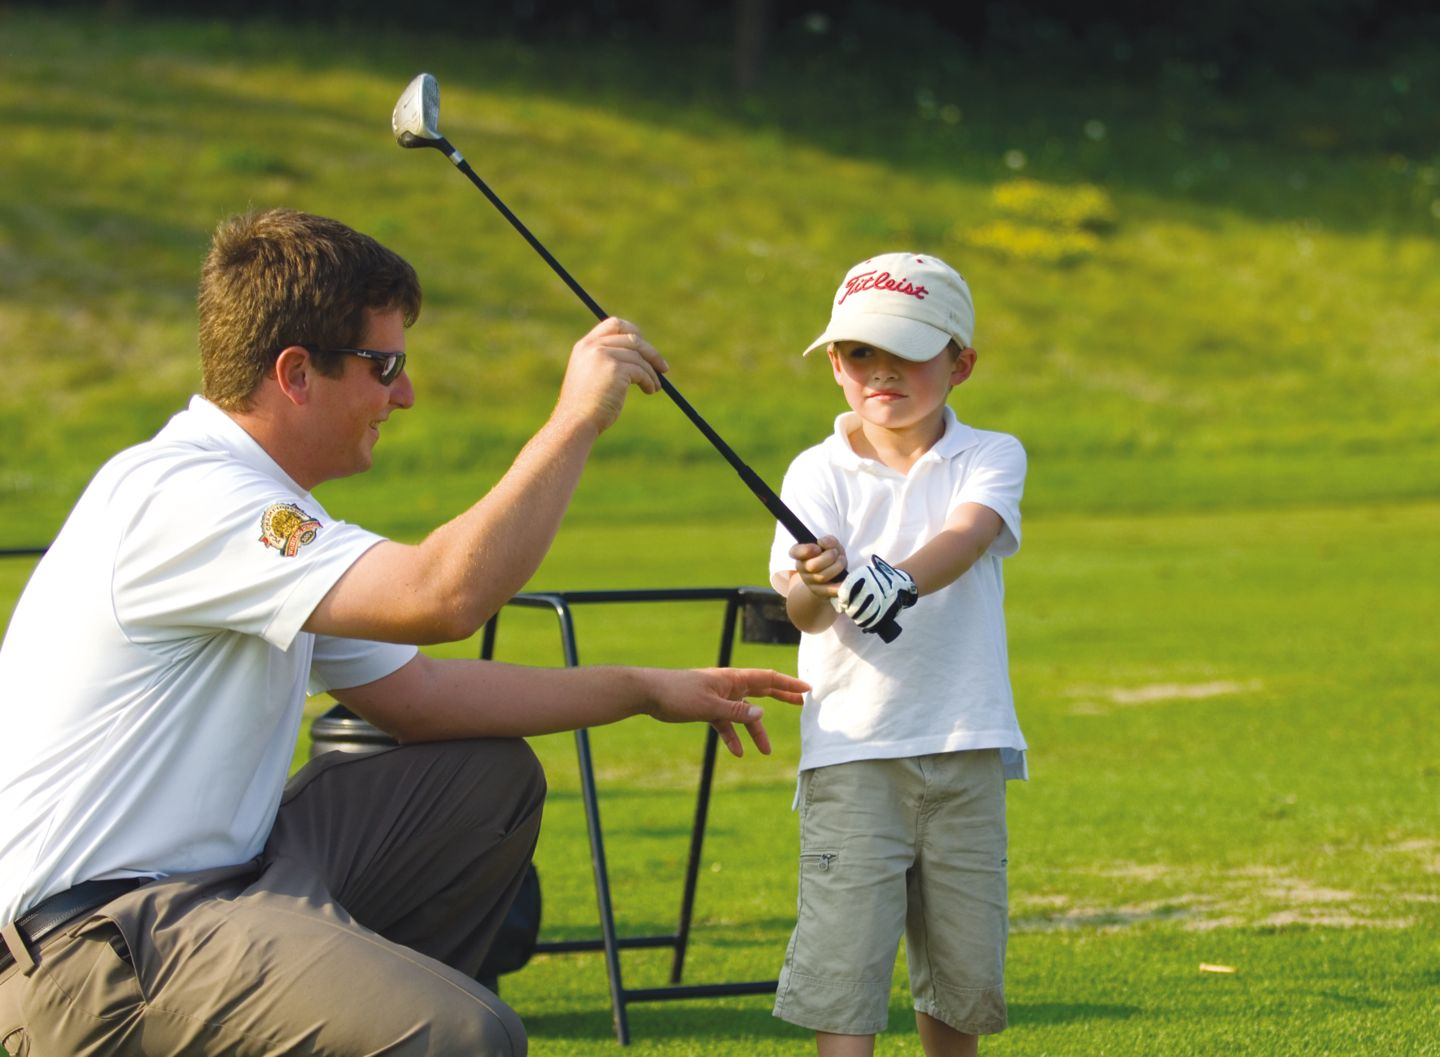 junior golfer receiving golf swing instruction